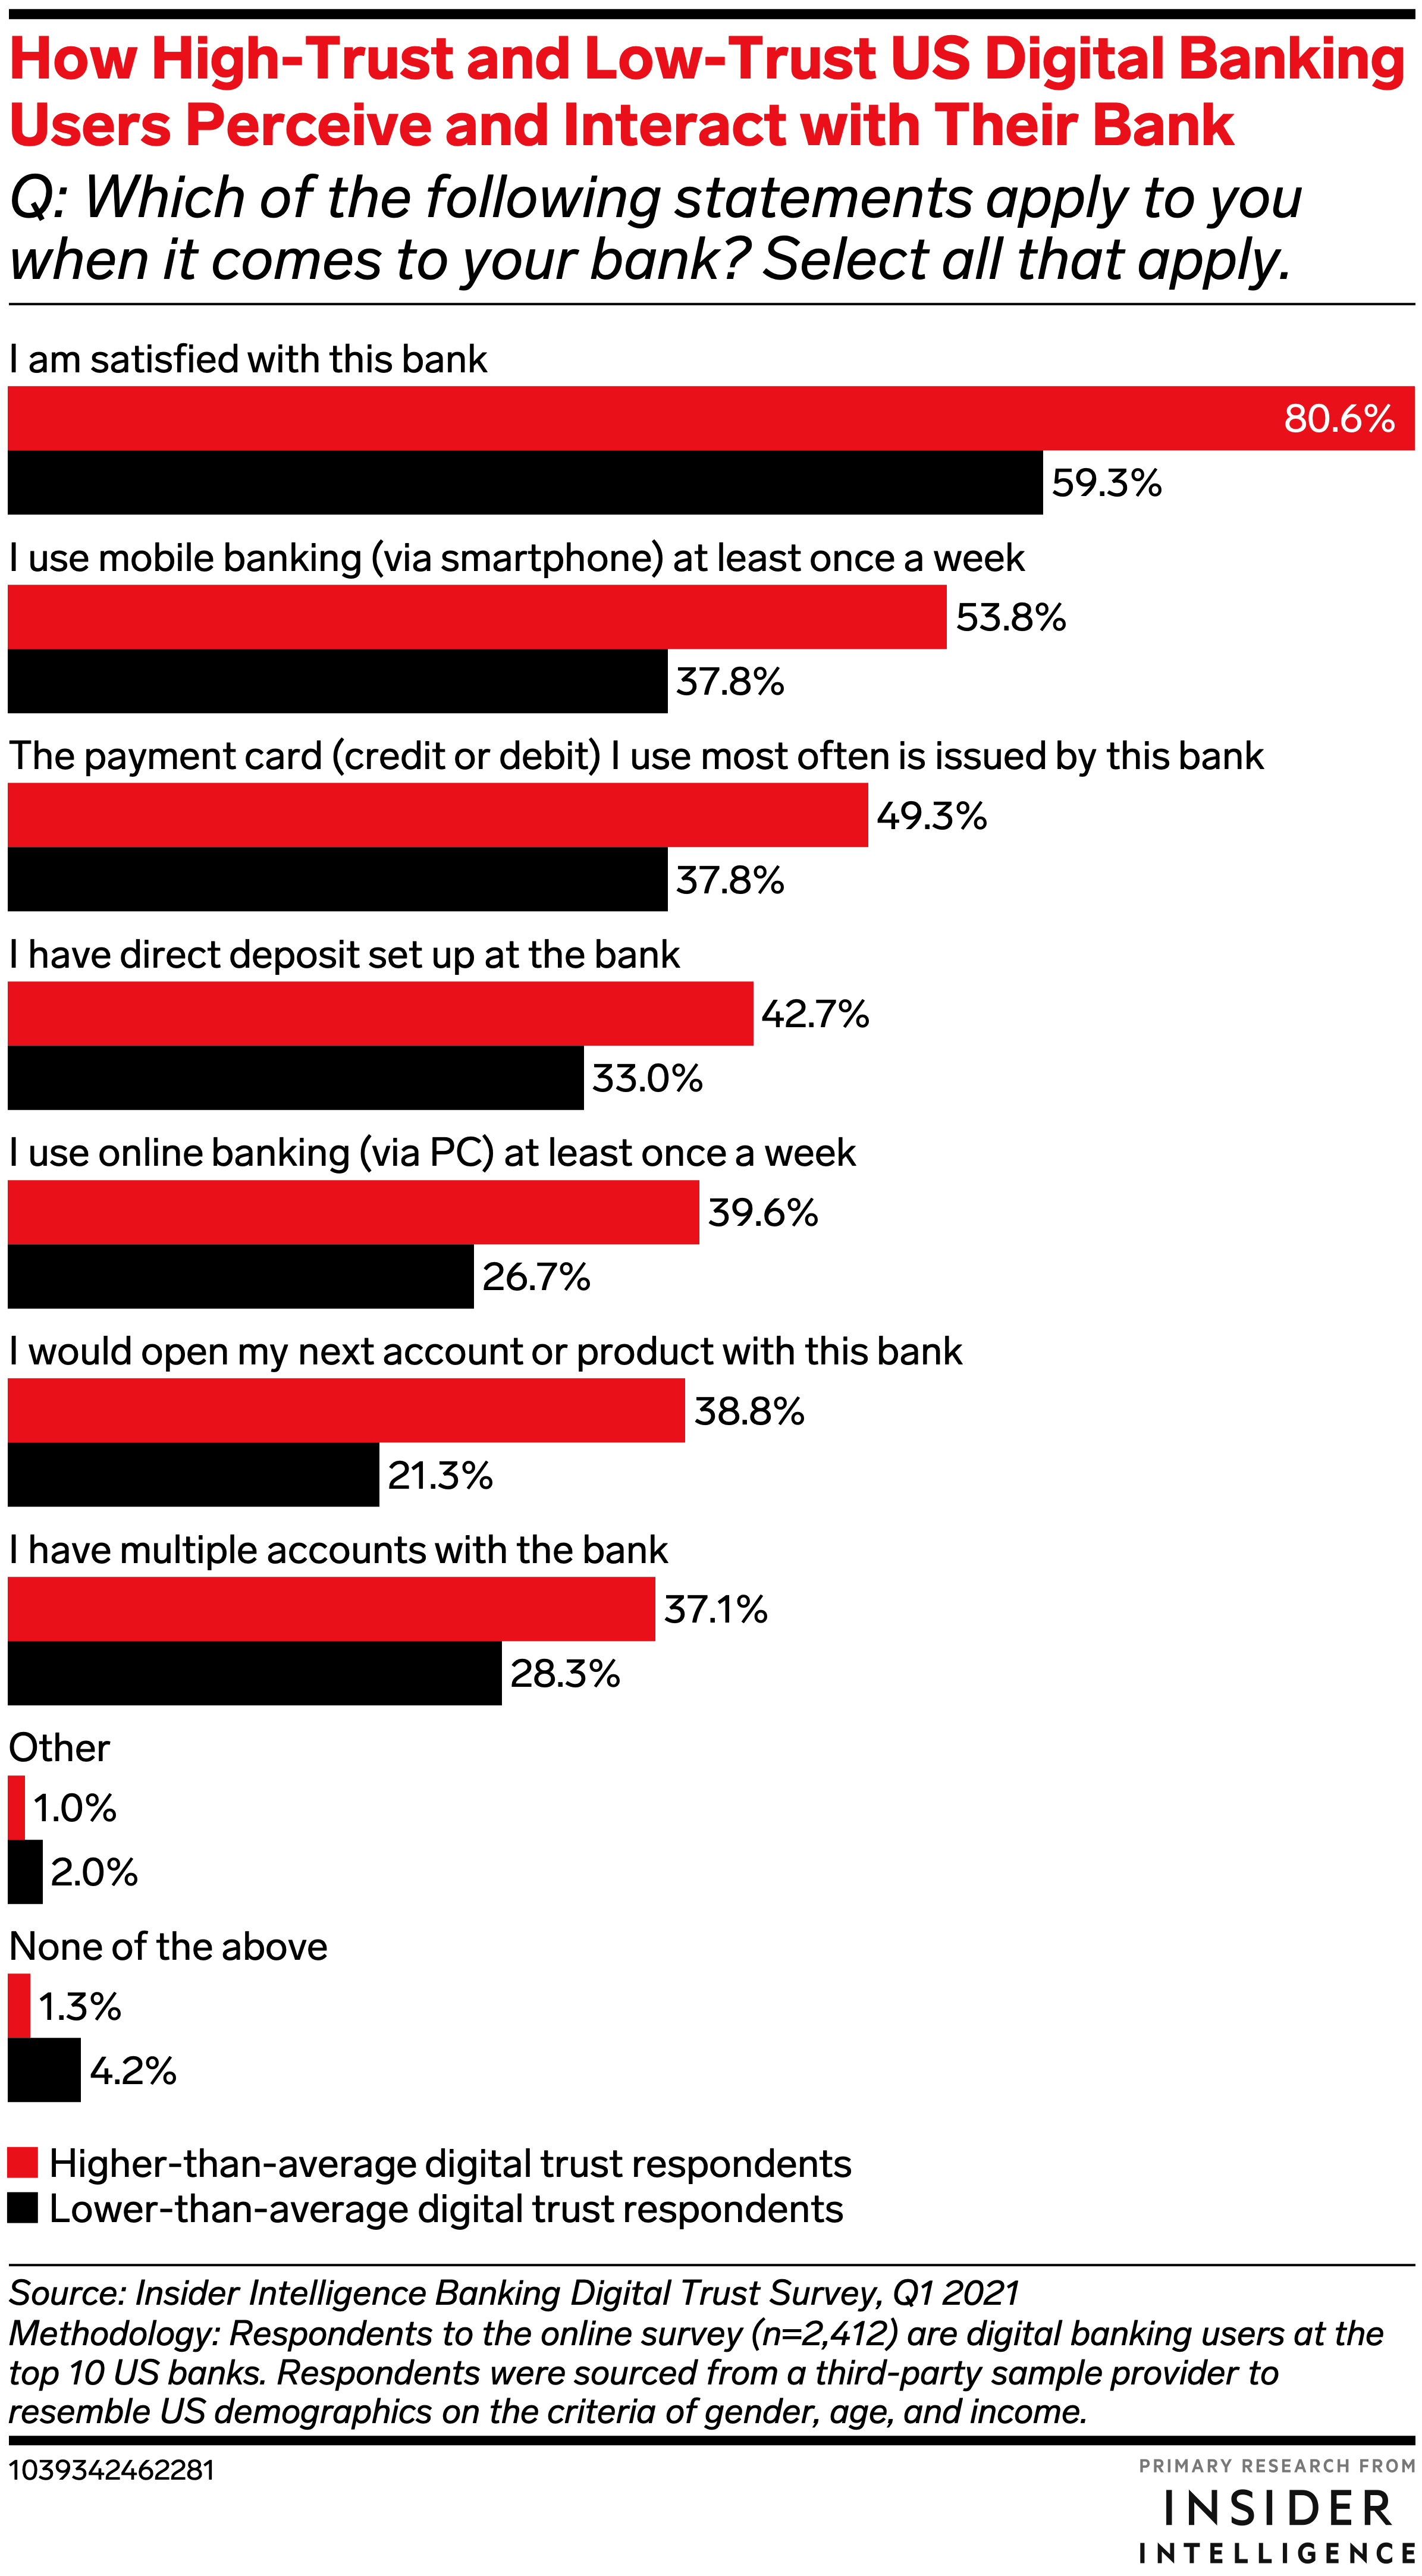 How High-Trust and Low-Trust US Digital Banking Users Perceive and Interact with Their Bank